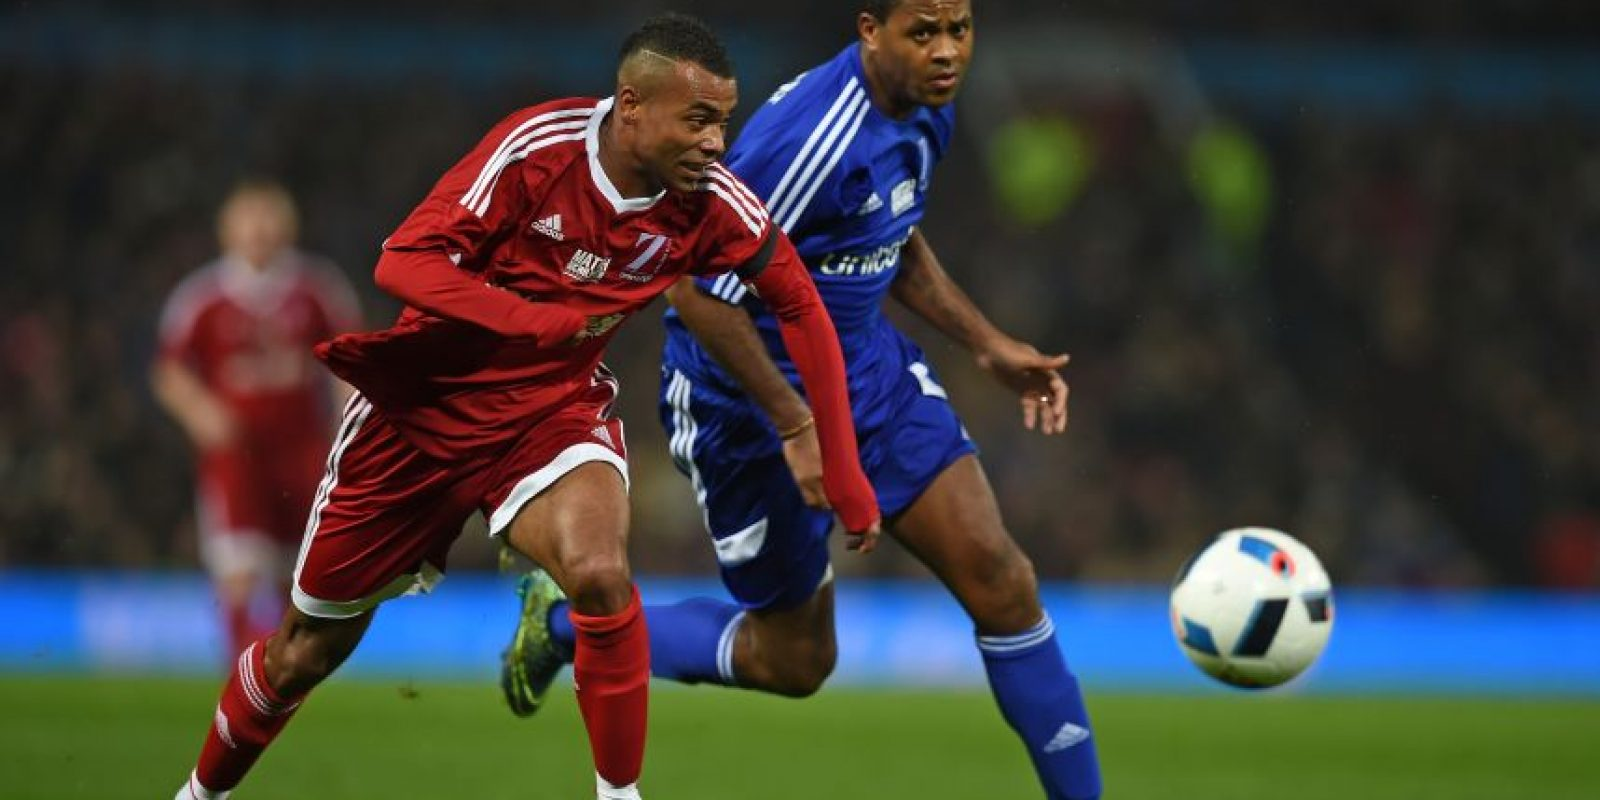 Ashley Cole en un partido en contra del Chelsea. Foto: AFP